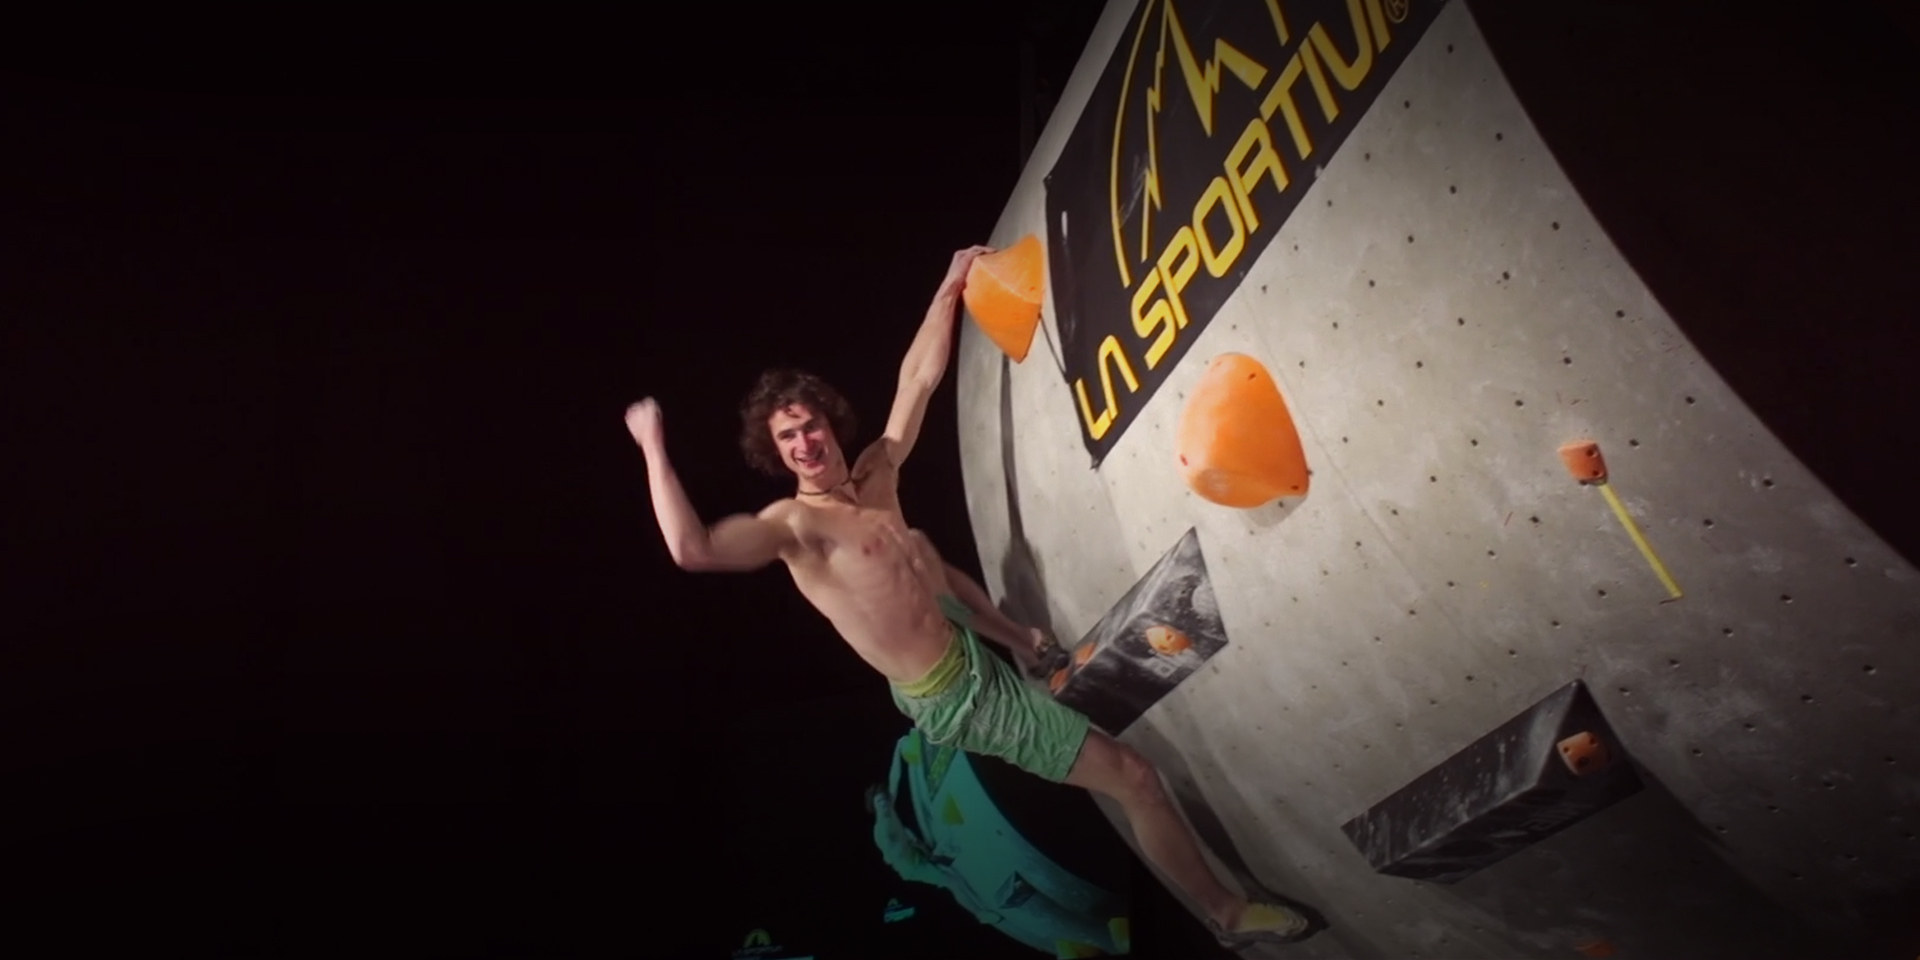 La Sportiva Legends Only 2014